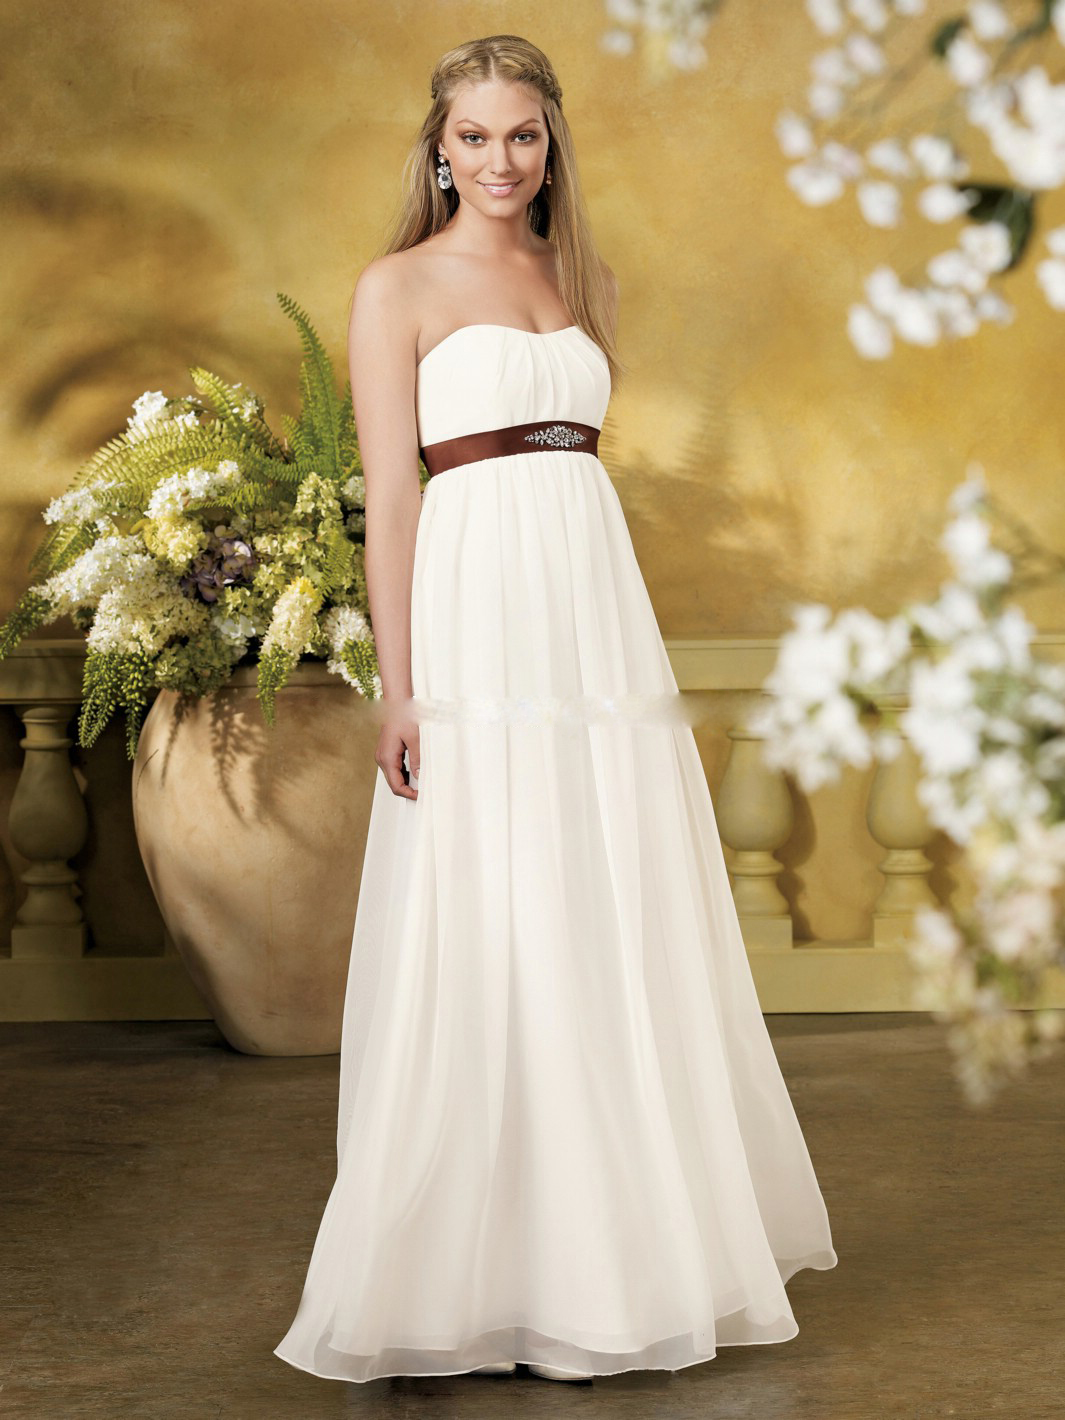 how to choose maternity wedding dresses pregnancy wedding dresses maternity wedding dresses